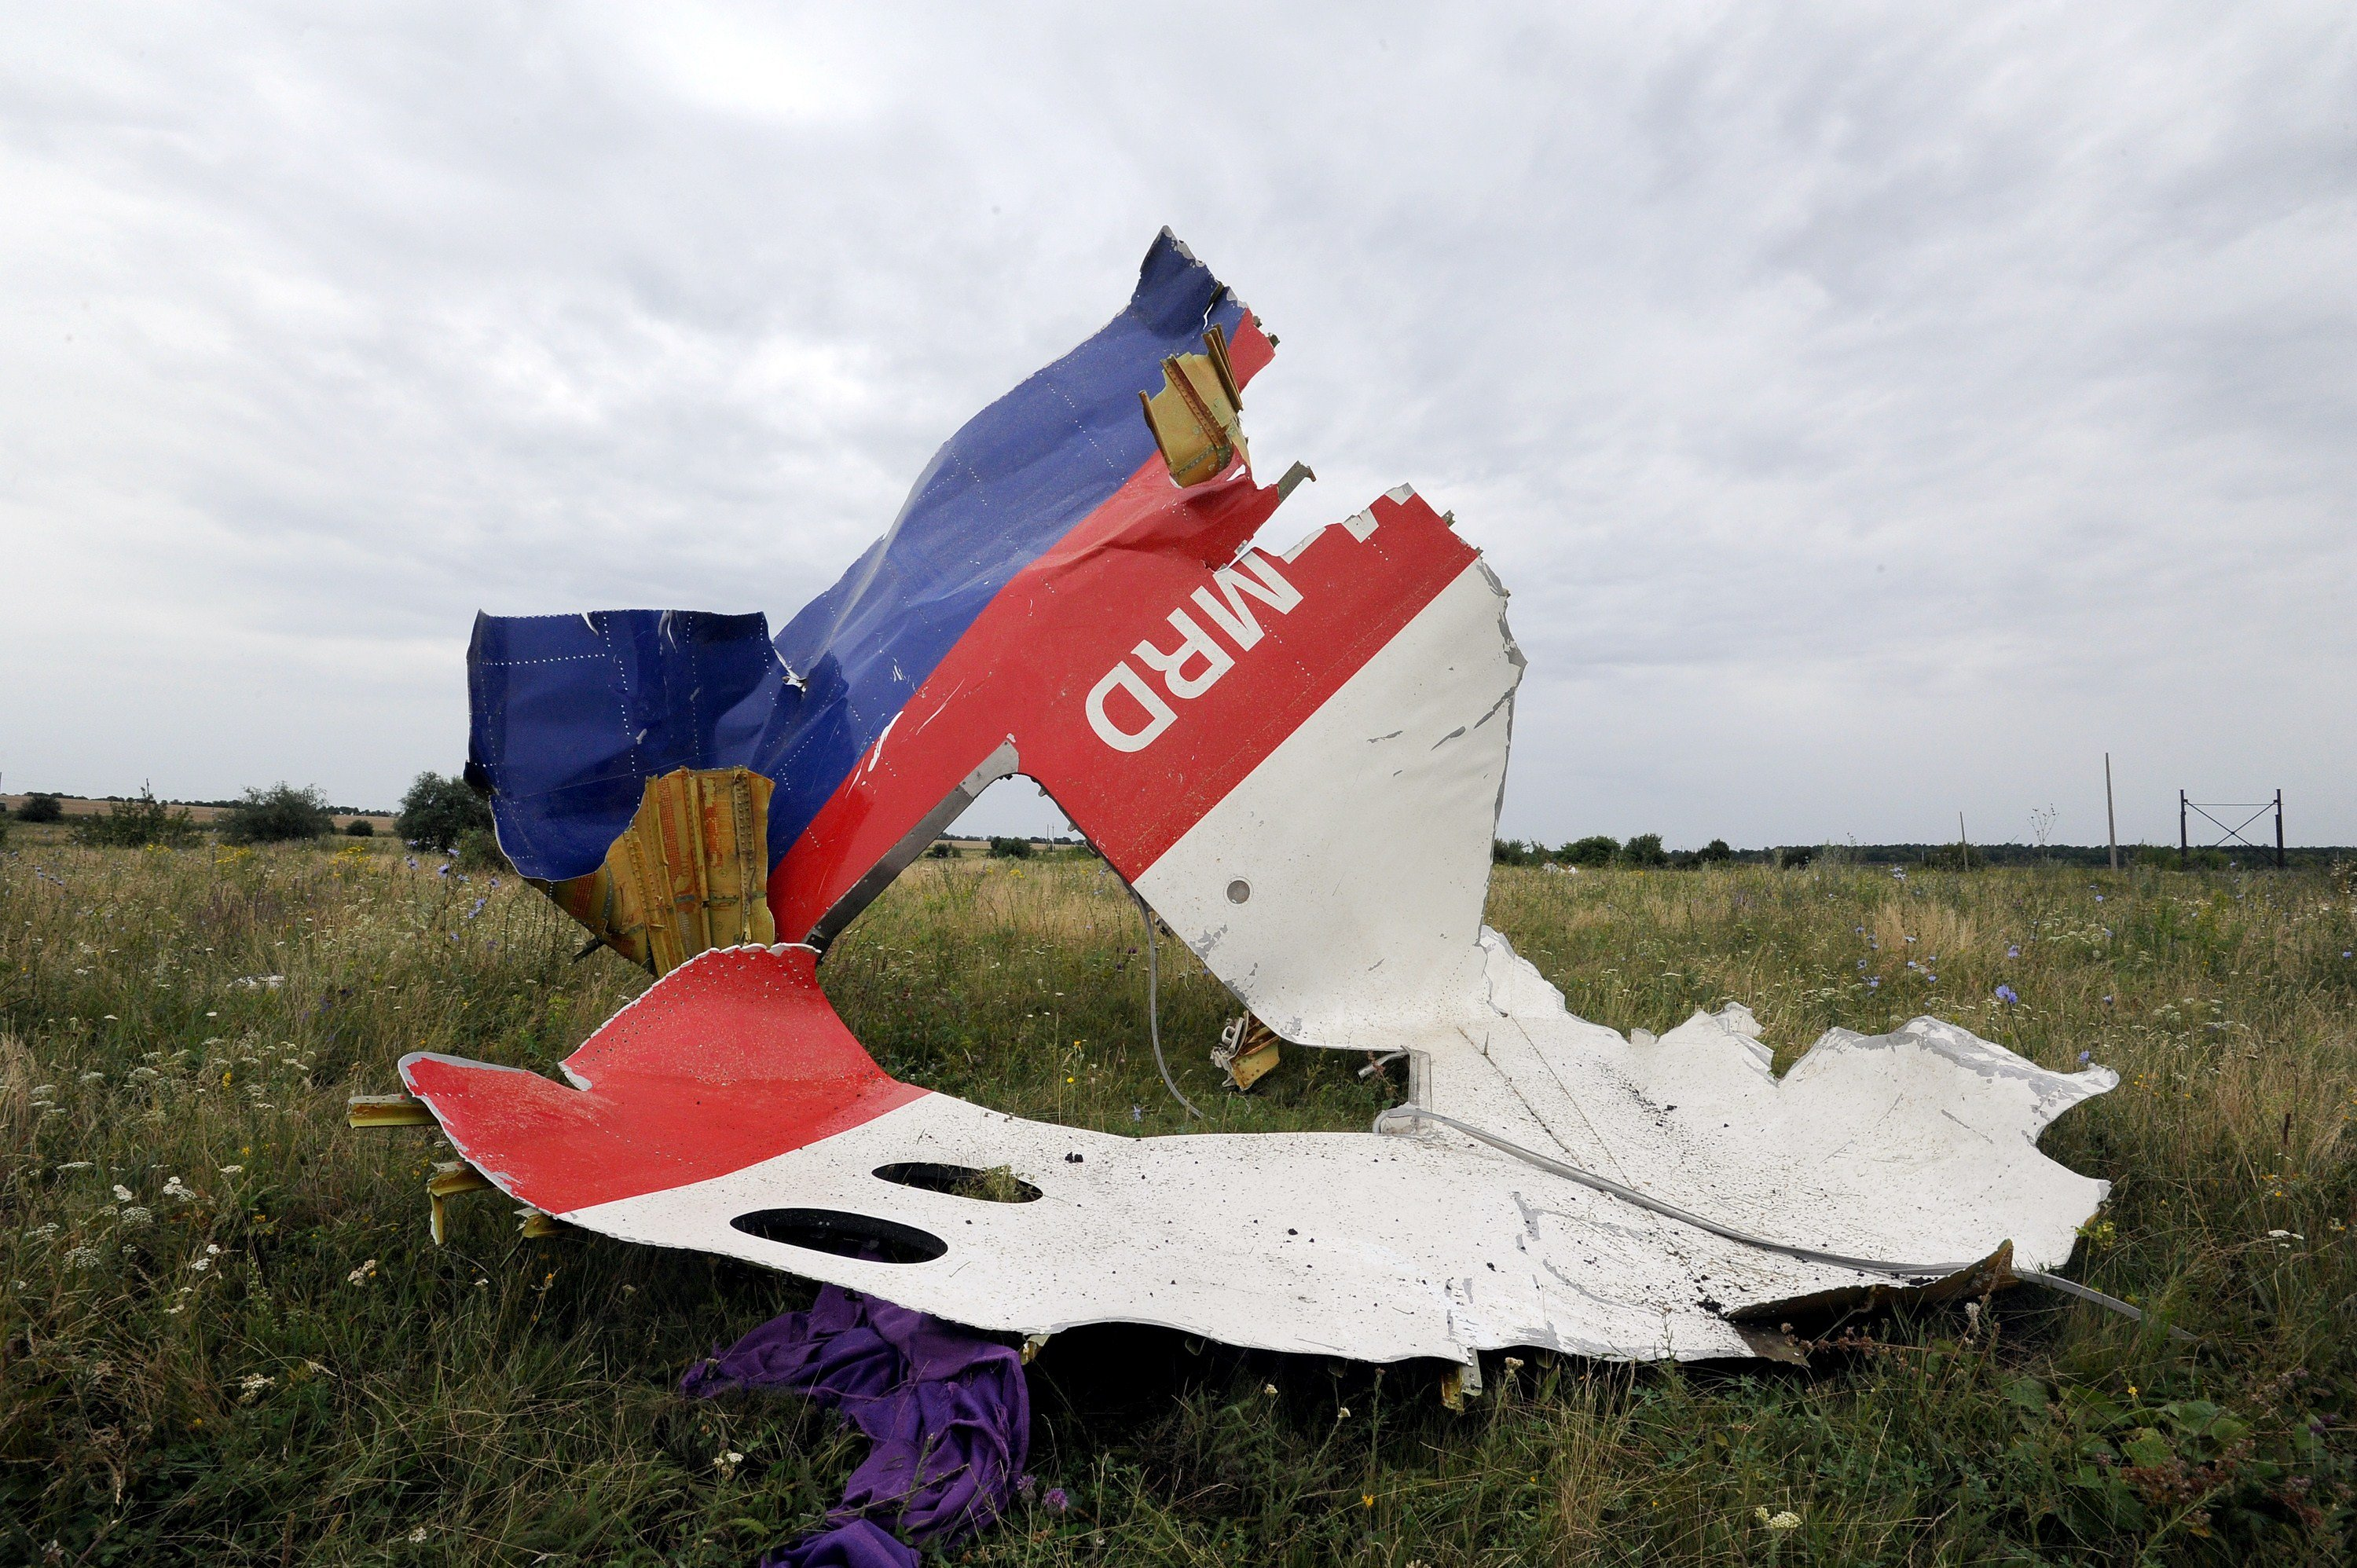 A piece of wreckage from the Malaysia Airlines flight MH17 is pictured on July 18, 2014 in Shaktarsk, Ukraine.